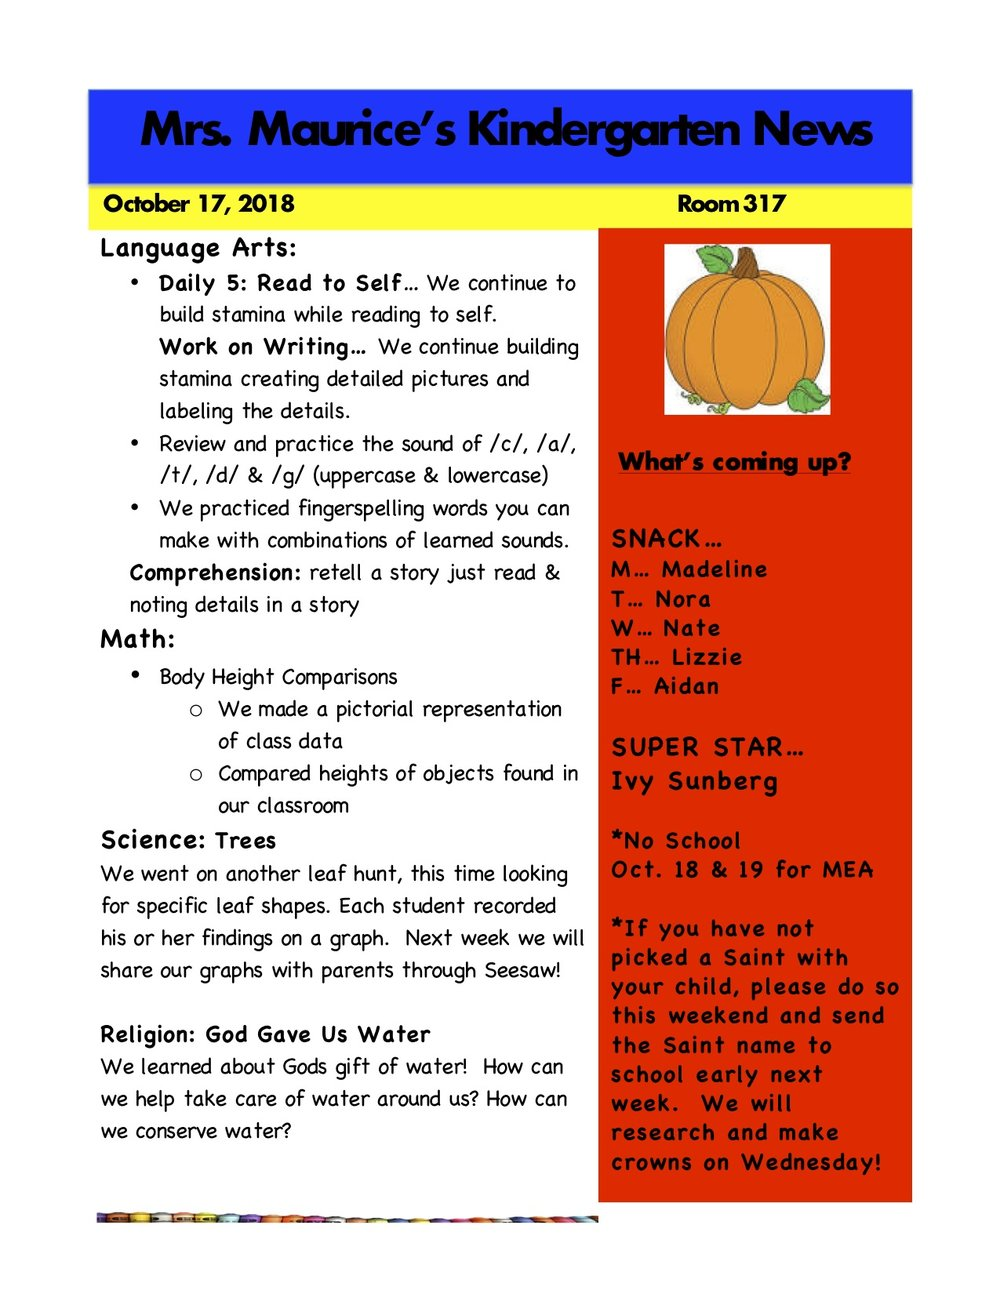 Kindergarten News Oct. 17.jpg